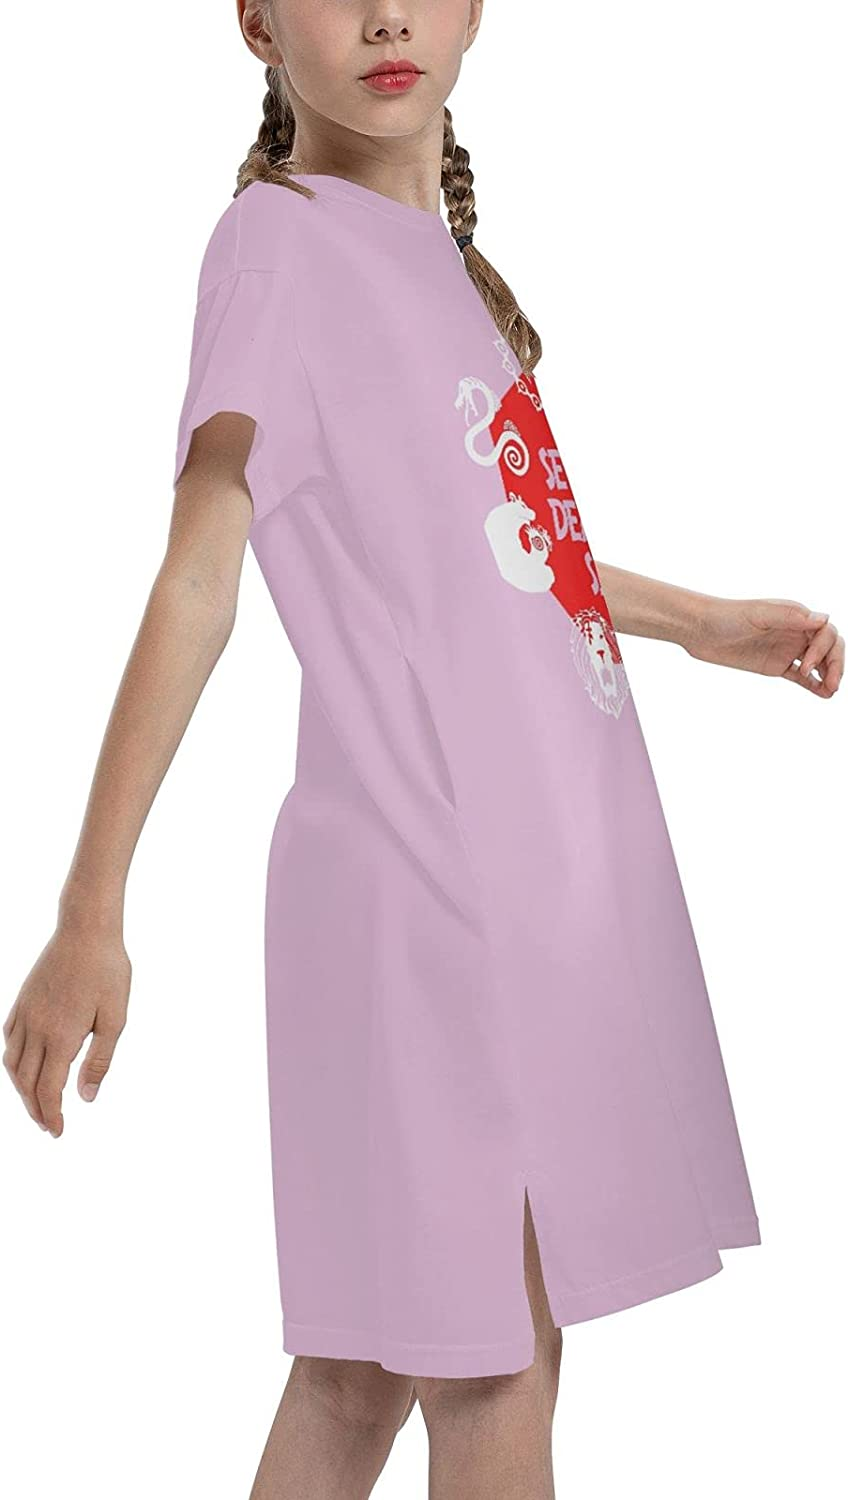 Vgfgtr The Seven Deadly Sins Logo Girls Short Sleeve Dress Casual Swing Twirl Skirt for Holiday Theme Party 7-12 Years